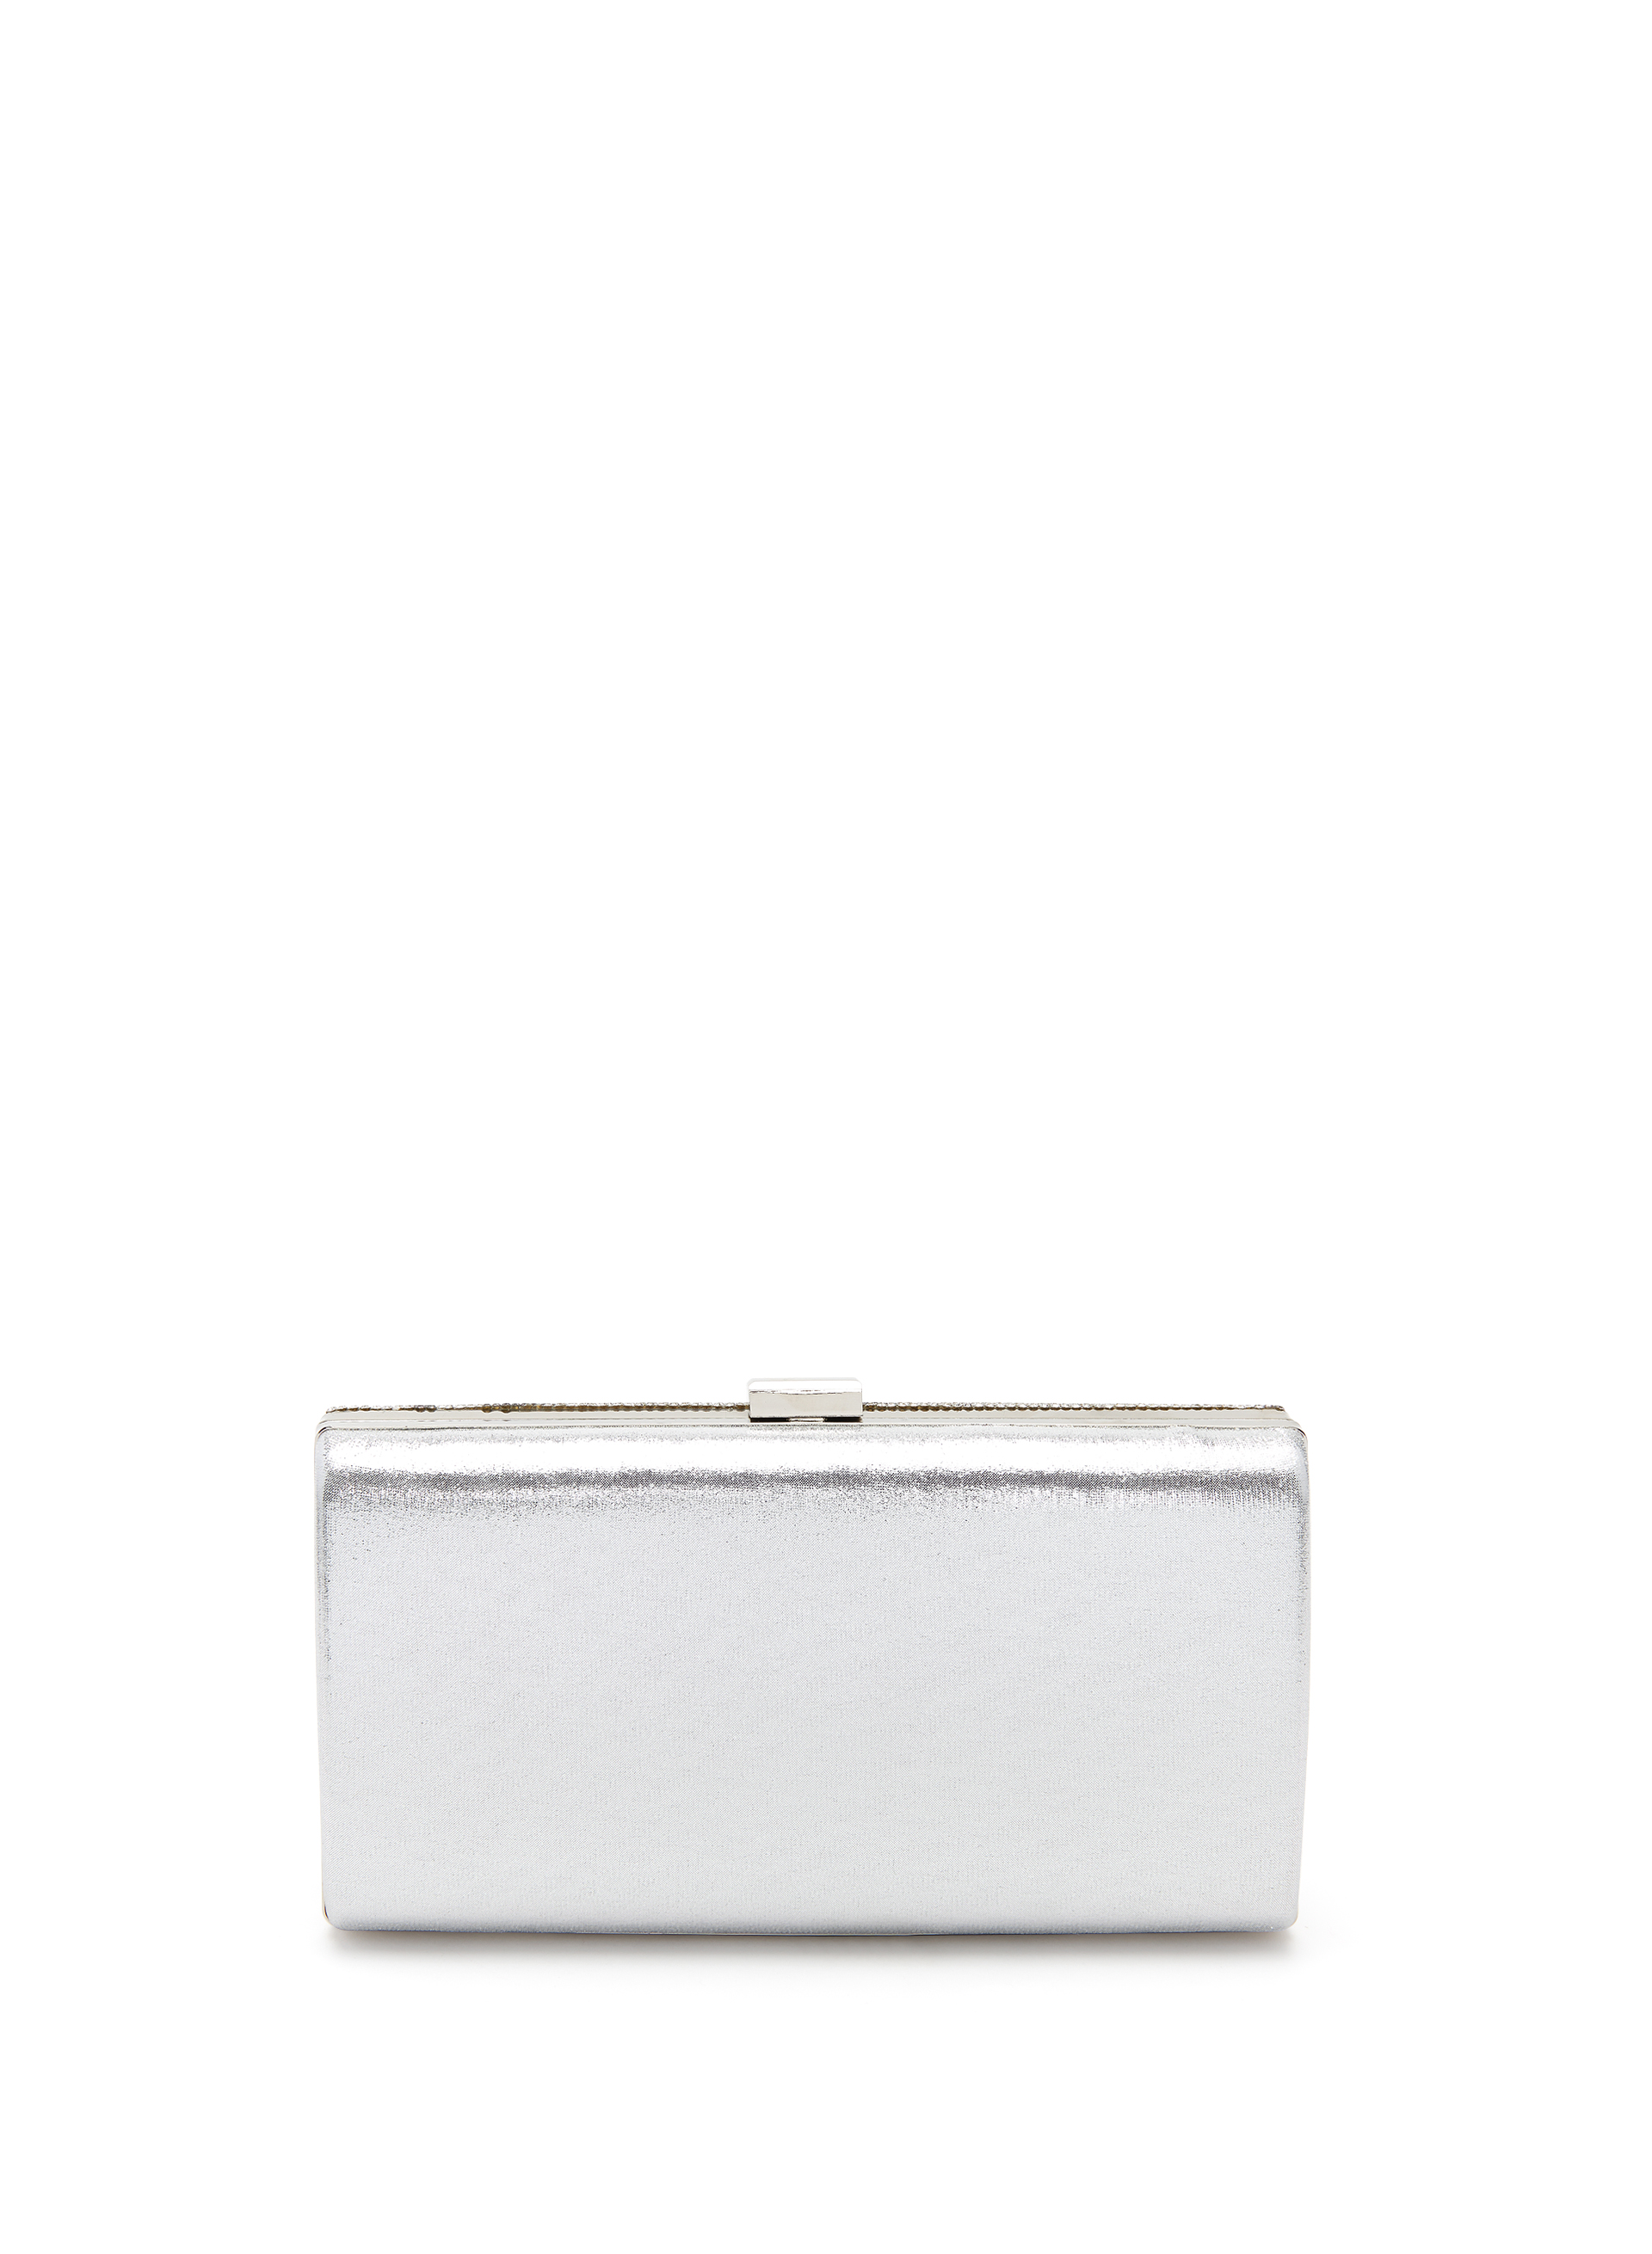 Geometric Crystal Clutch, Silver, hi-res